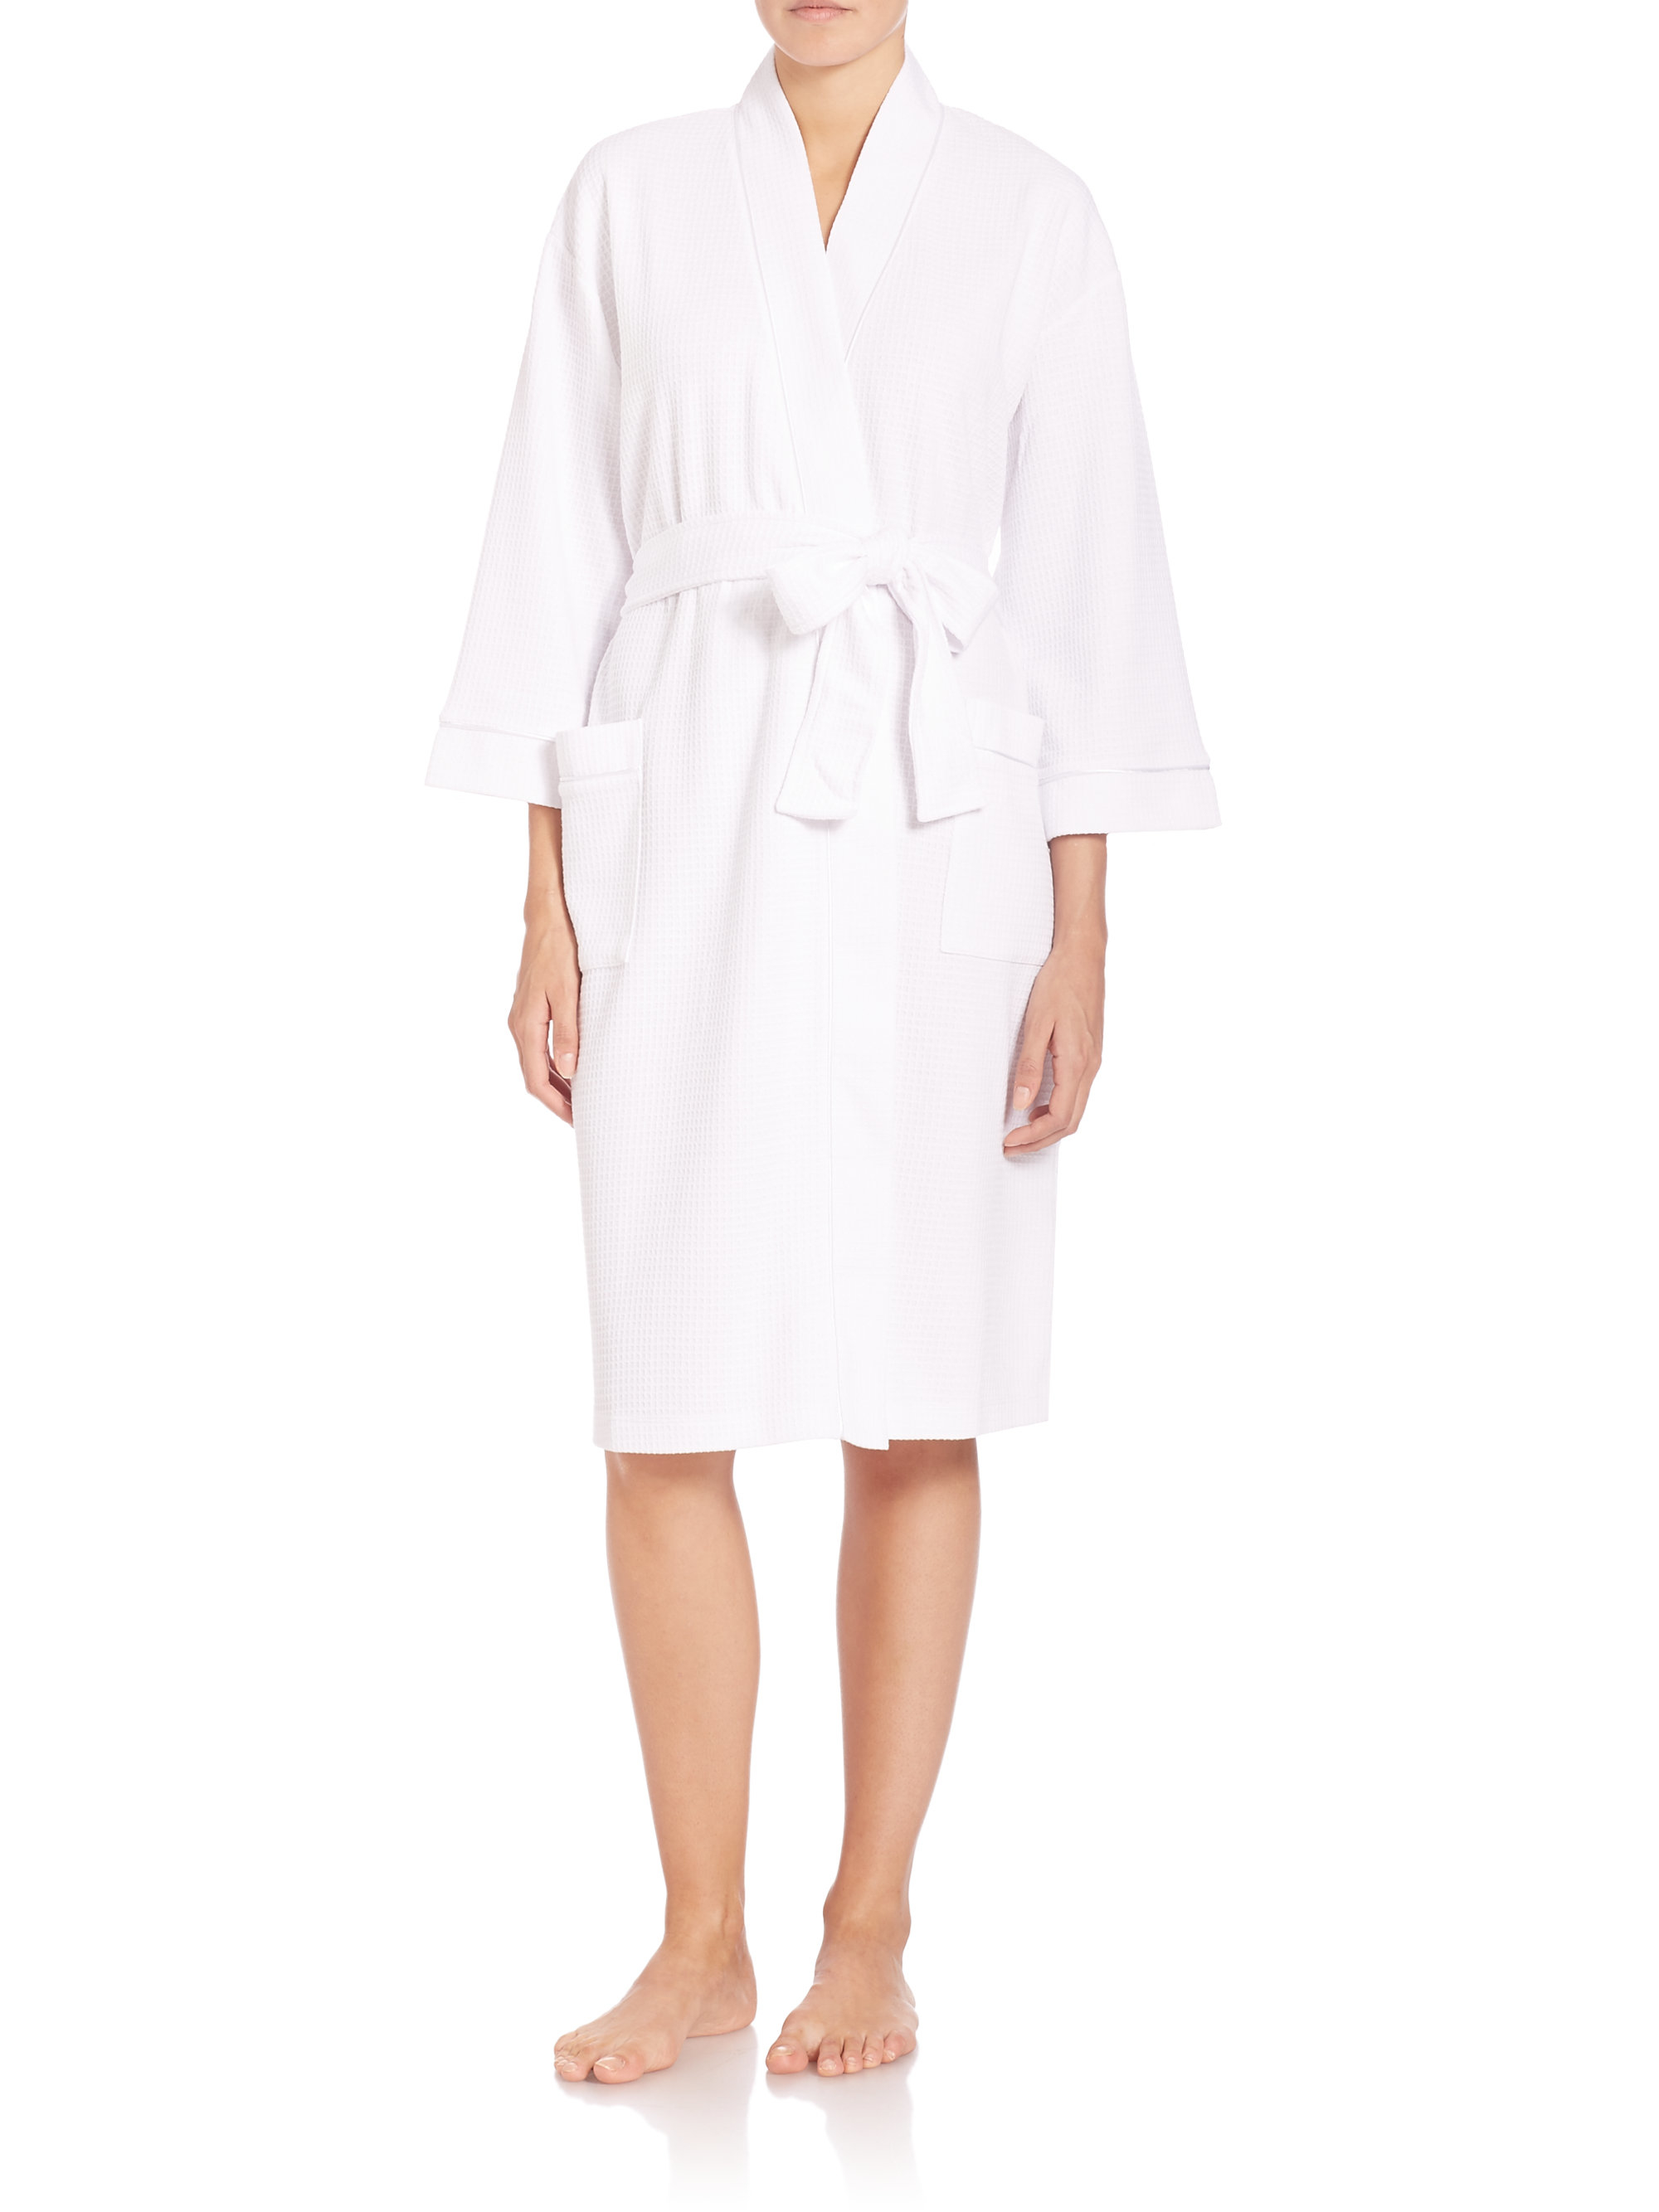 Saks fifth avenue waffle knit wrap robe in white lyst for Saks 5th avenue robes de mariage